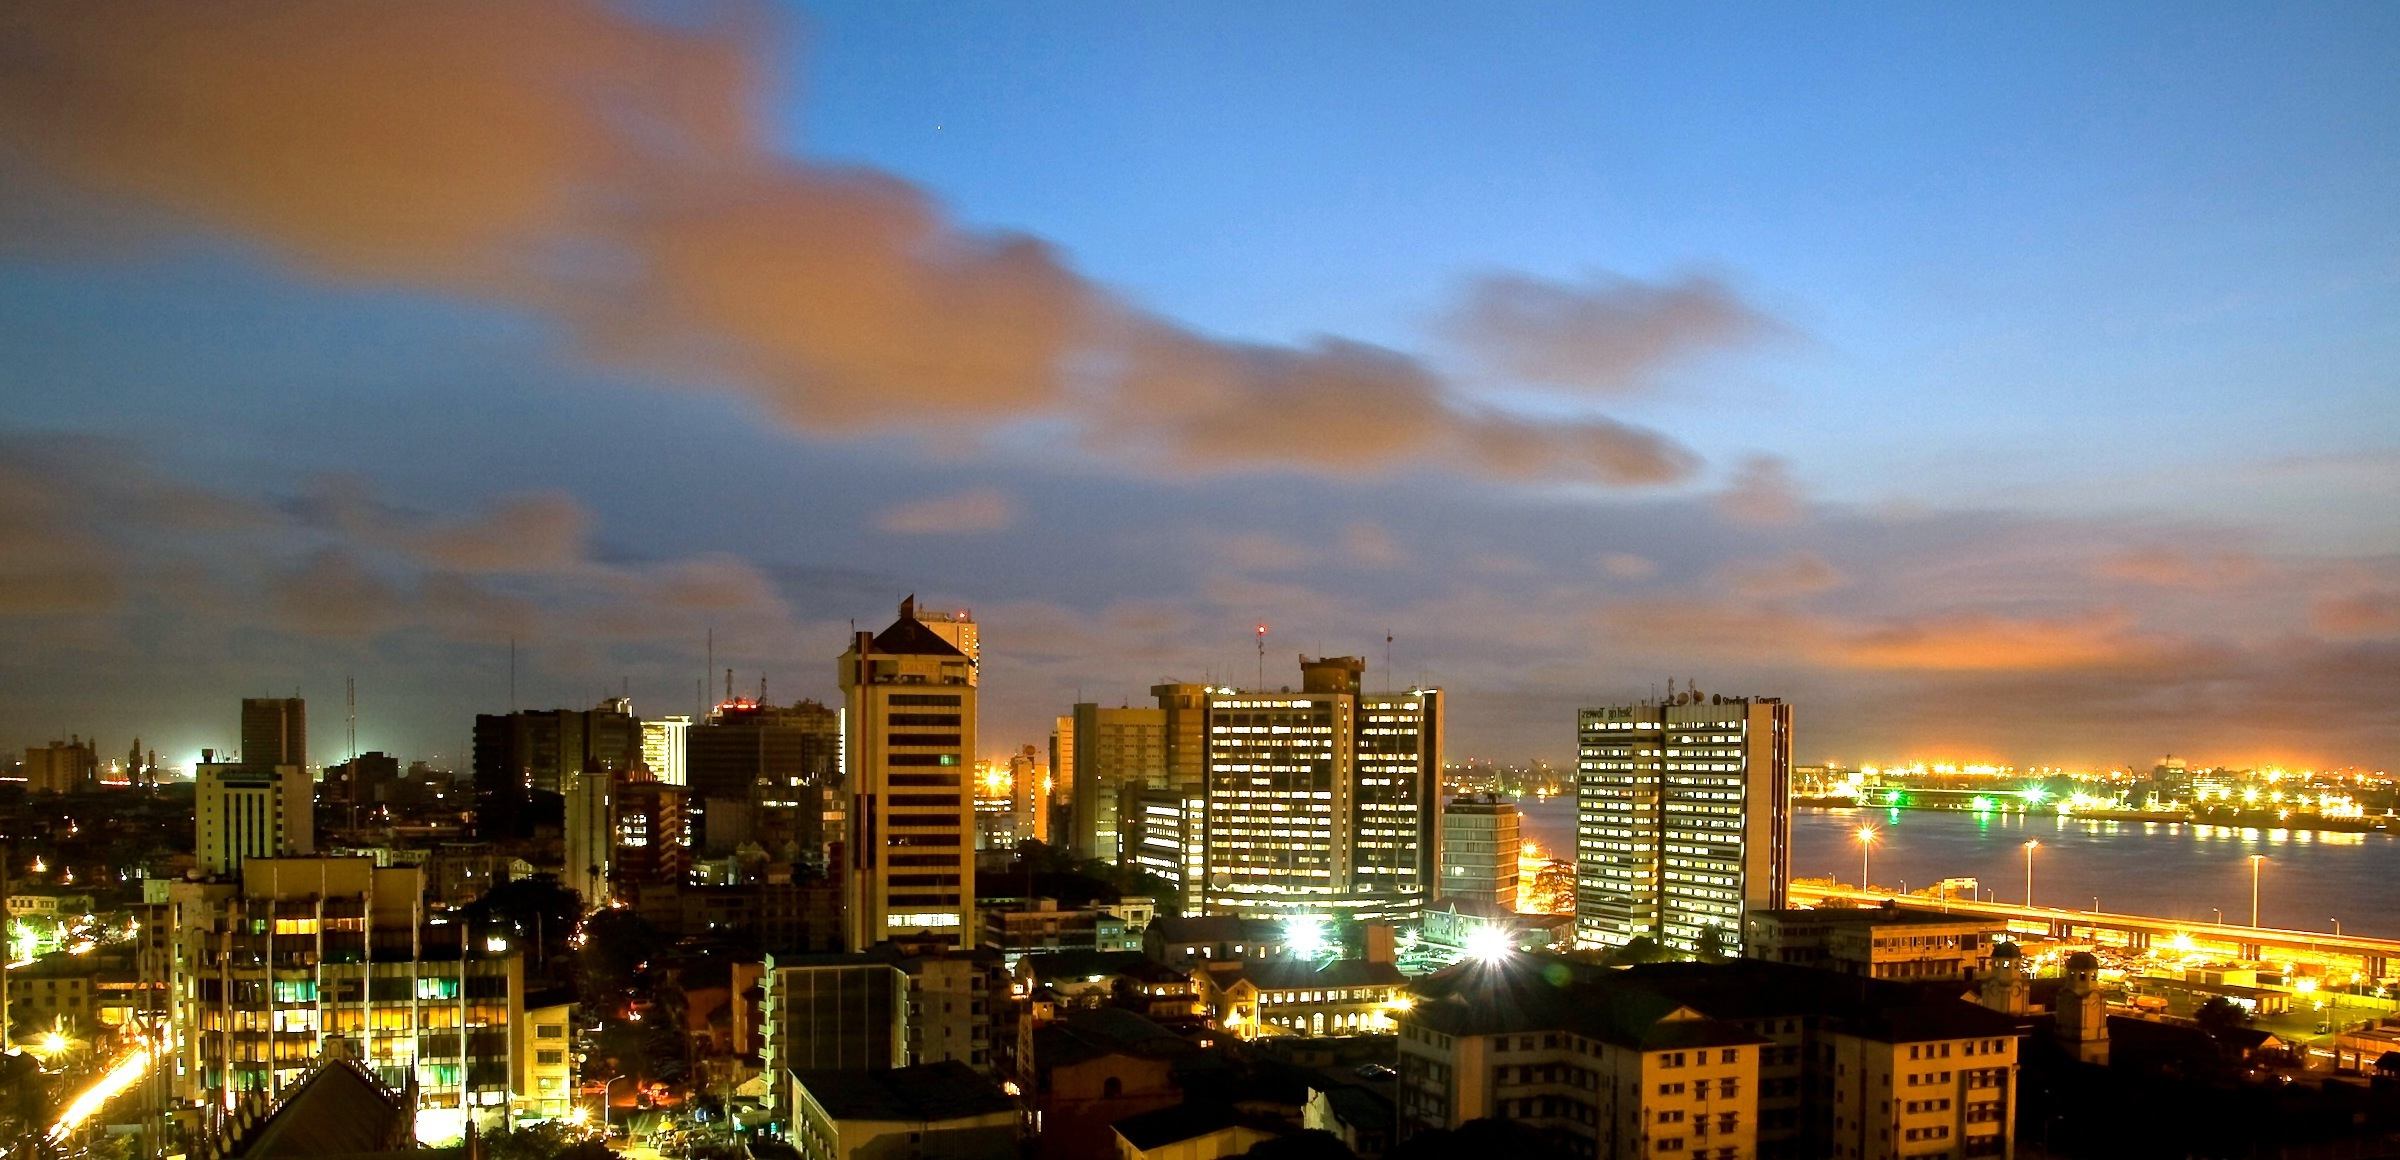 Features: Top 10 Investment Destinations in Africa